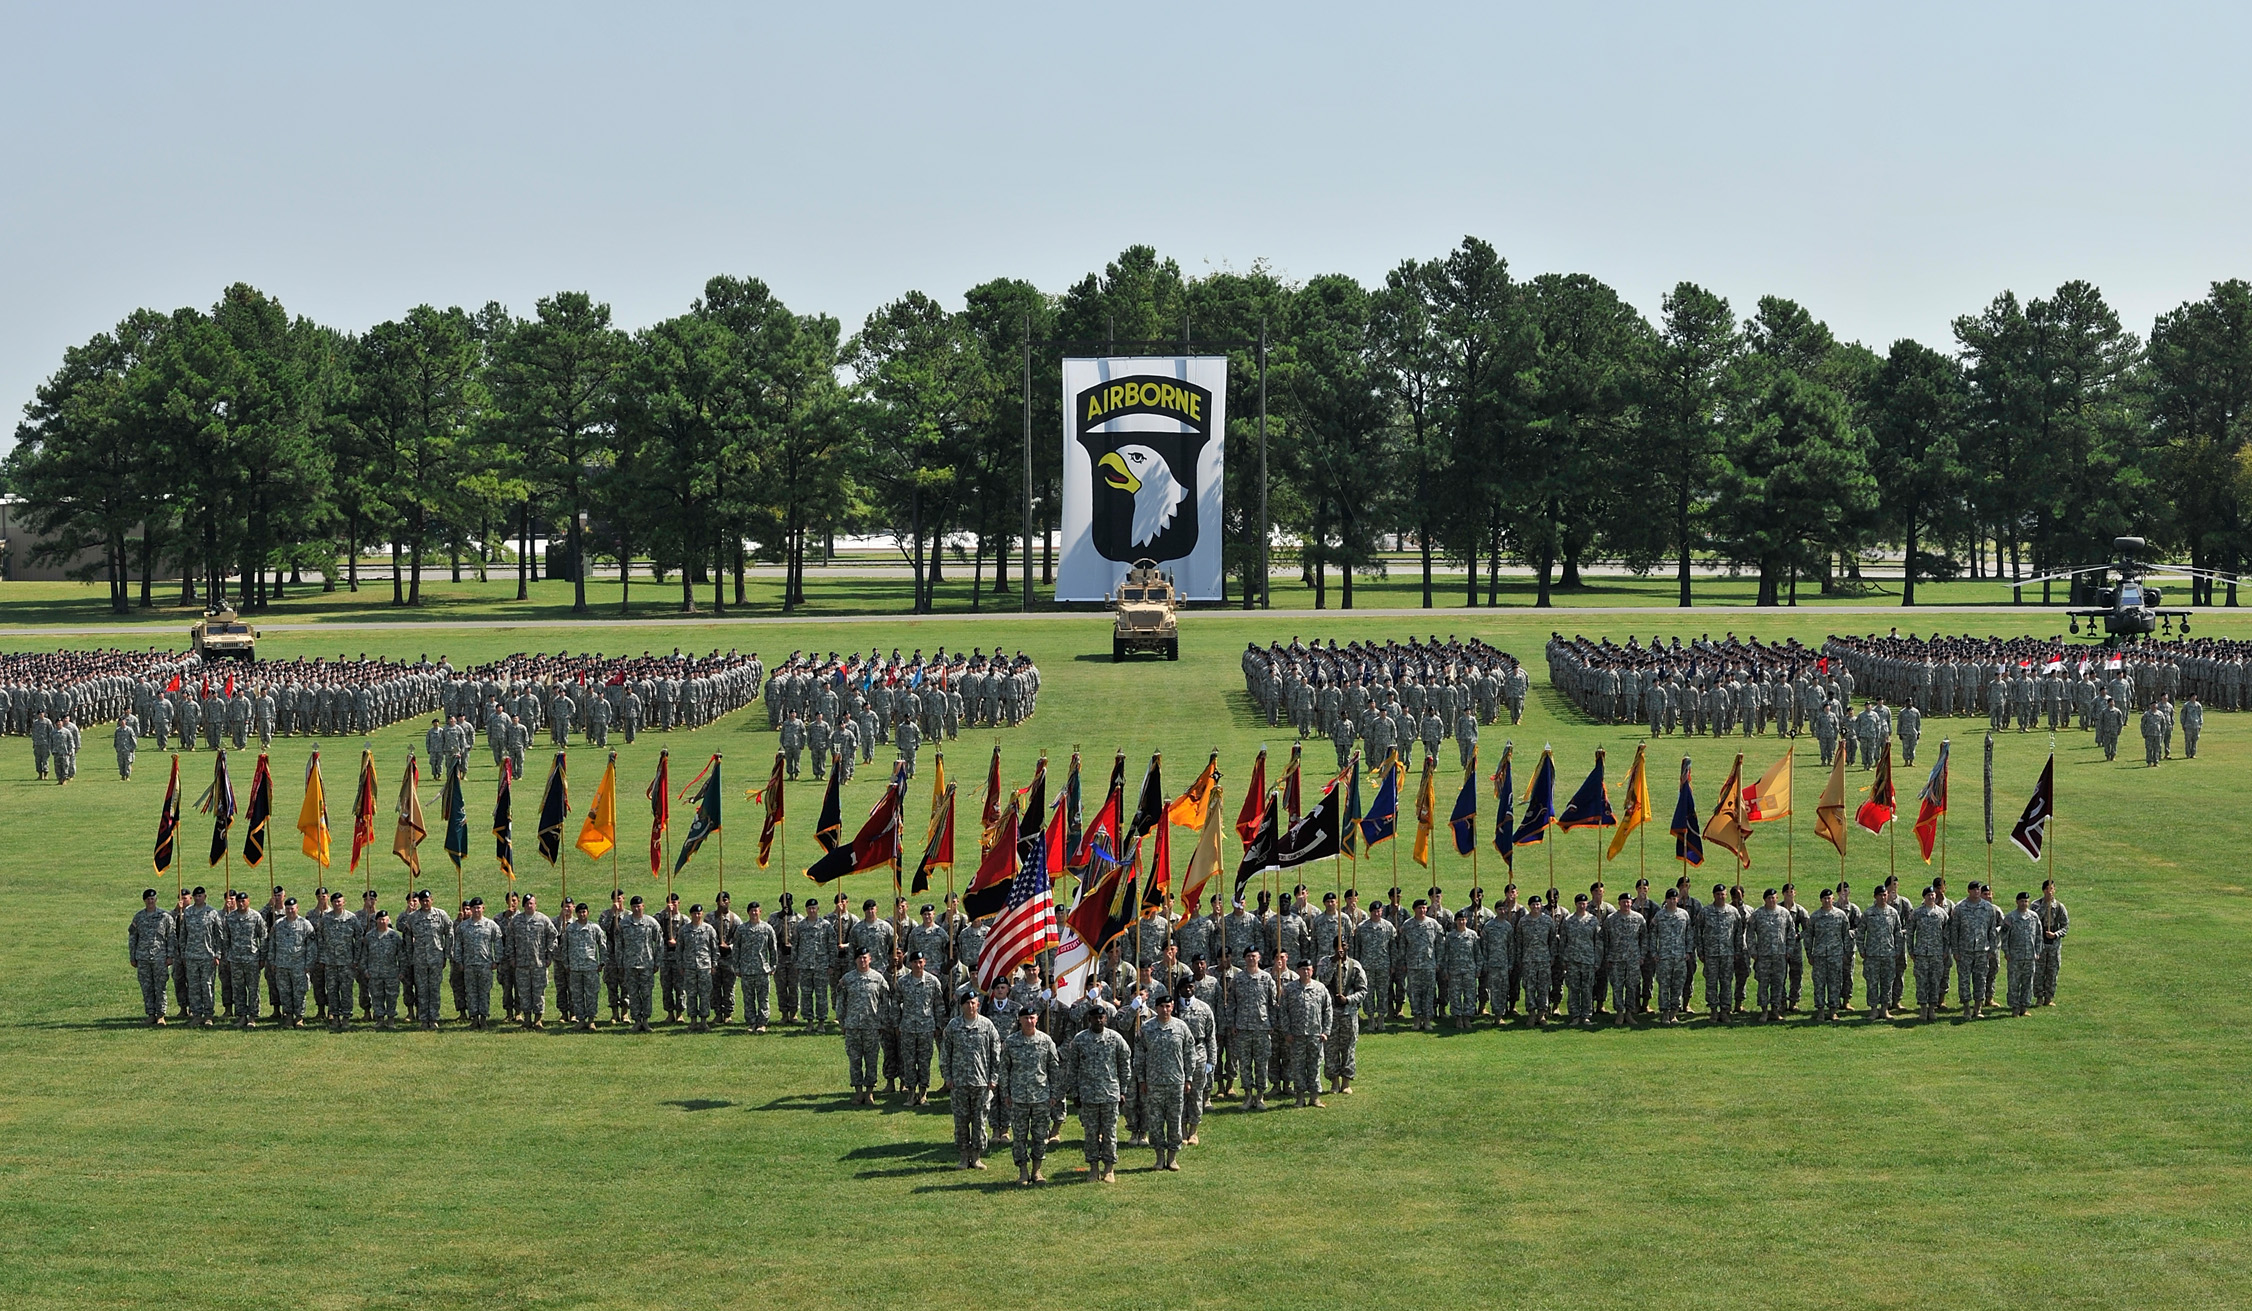 101st Airborne Divison (Air Assault) at Fort Campbell